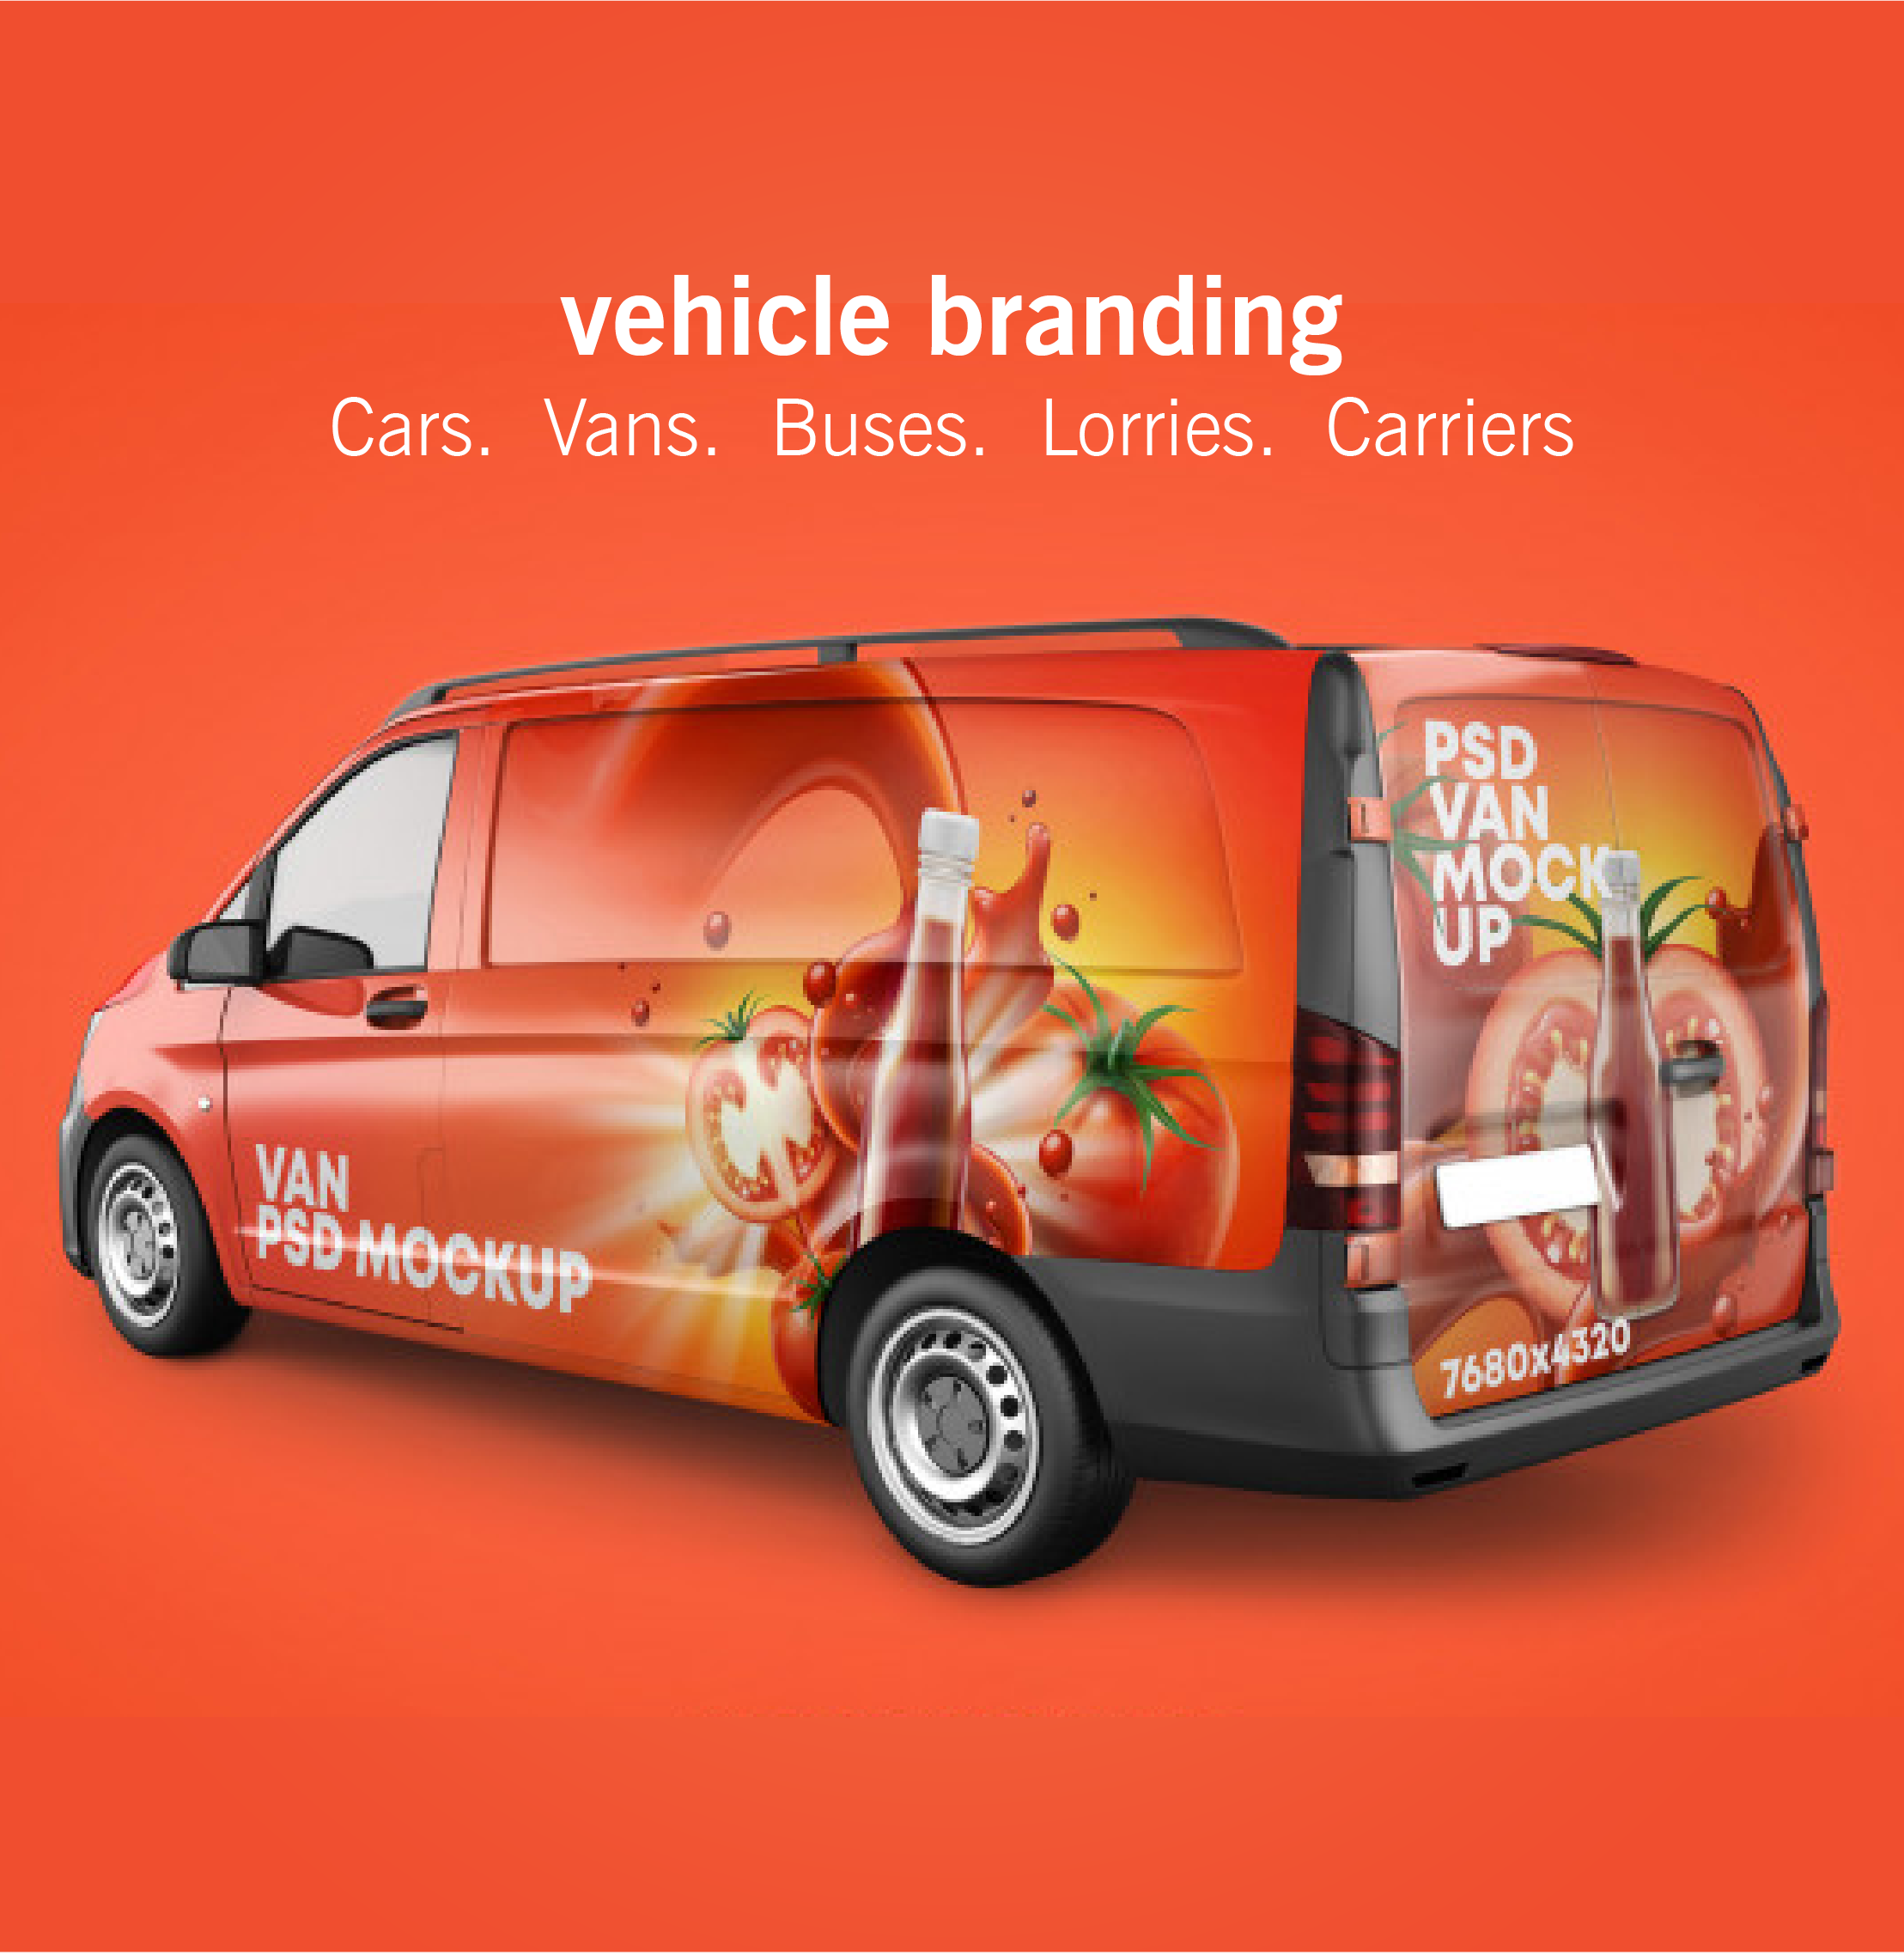 Indoor, Outdoor, and Vehicle Branding | Signage & Promotional Display